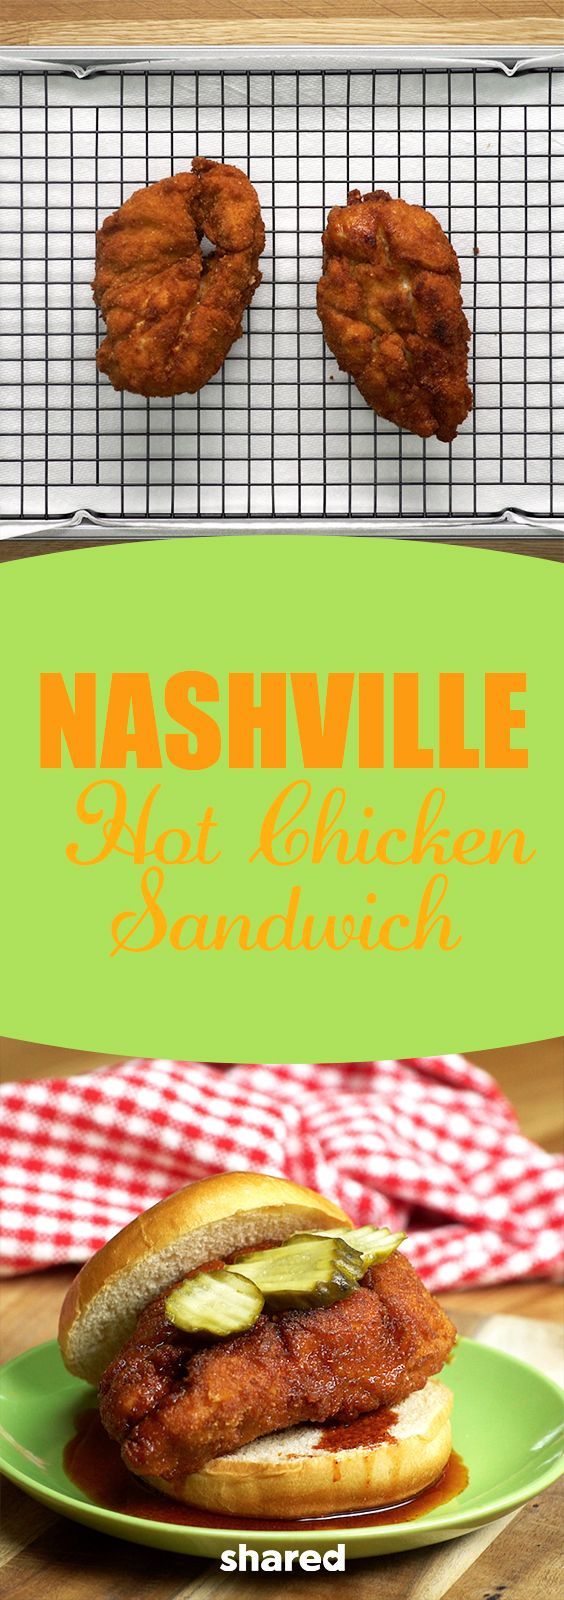 The Nashville hot chicken is a well-known (and loved!) type of fried chicken originating from - you guessed it - Nashville, Tennessee! Typically served with sliced white bread and pickle chips, our spin on the Nashville Hot Chicken Sandwich will leave you happy and full from a delicious meal! We deep fry our chicken for a satisfyingly crispy outside paired with a juicy interior when you take a bite, and don't forget the spicy sauce - you need to sauce up those sandwiches before serving for…